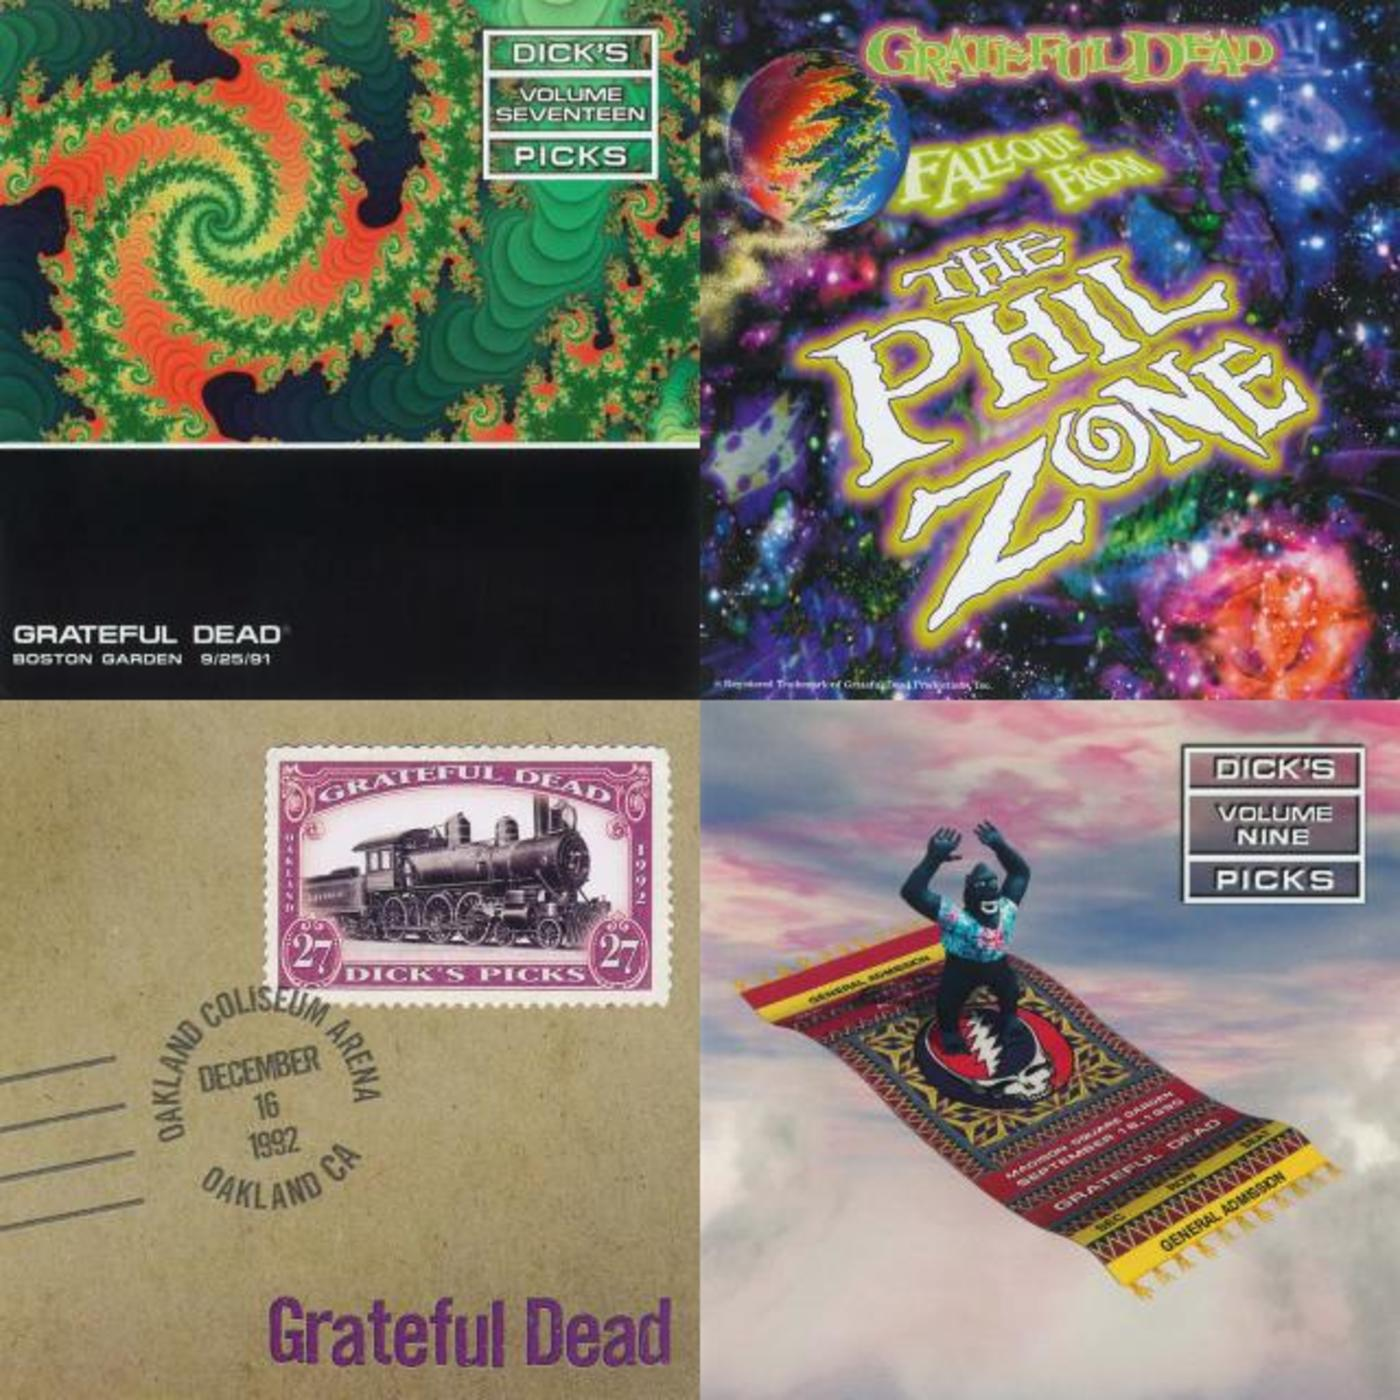 Remembering Vince Welnick - Grateful Dead